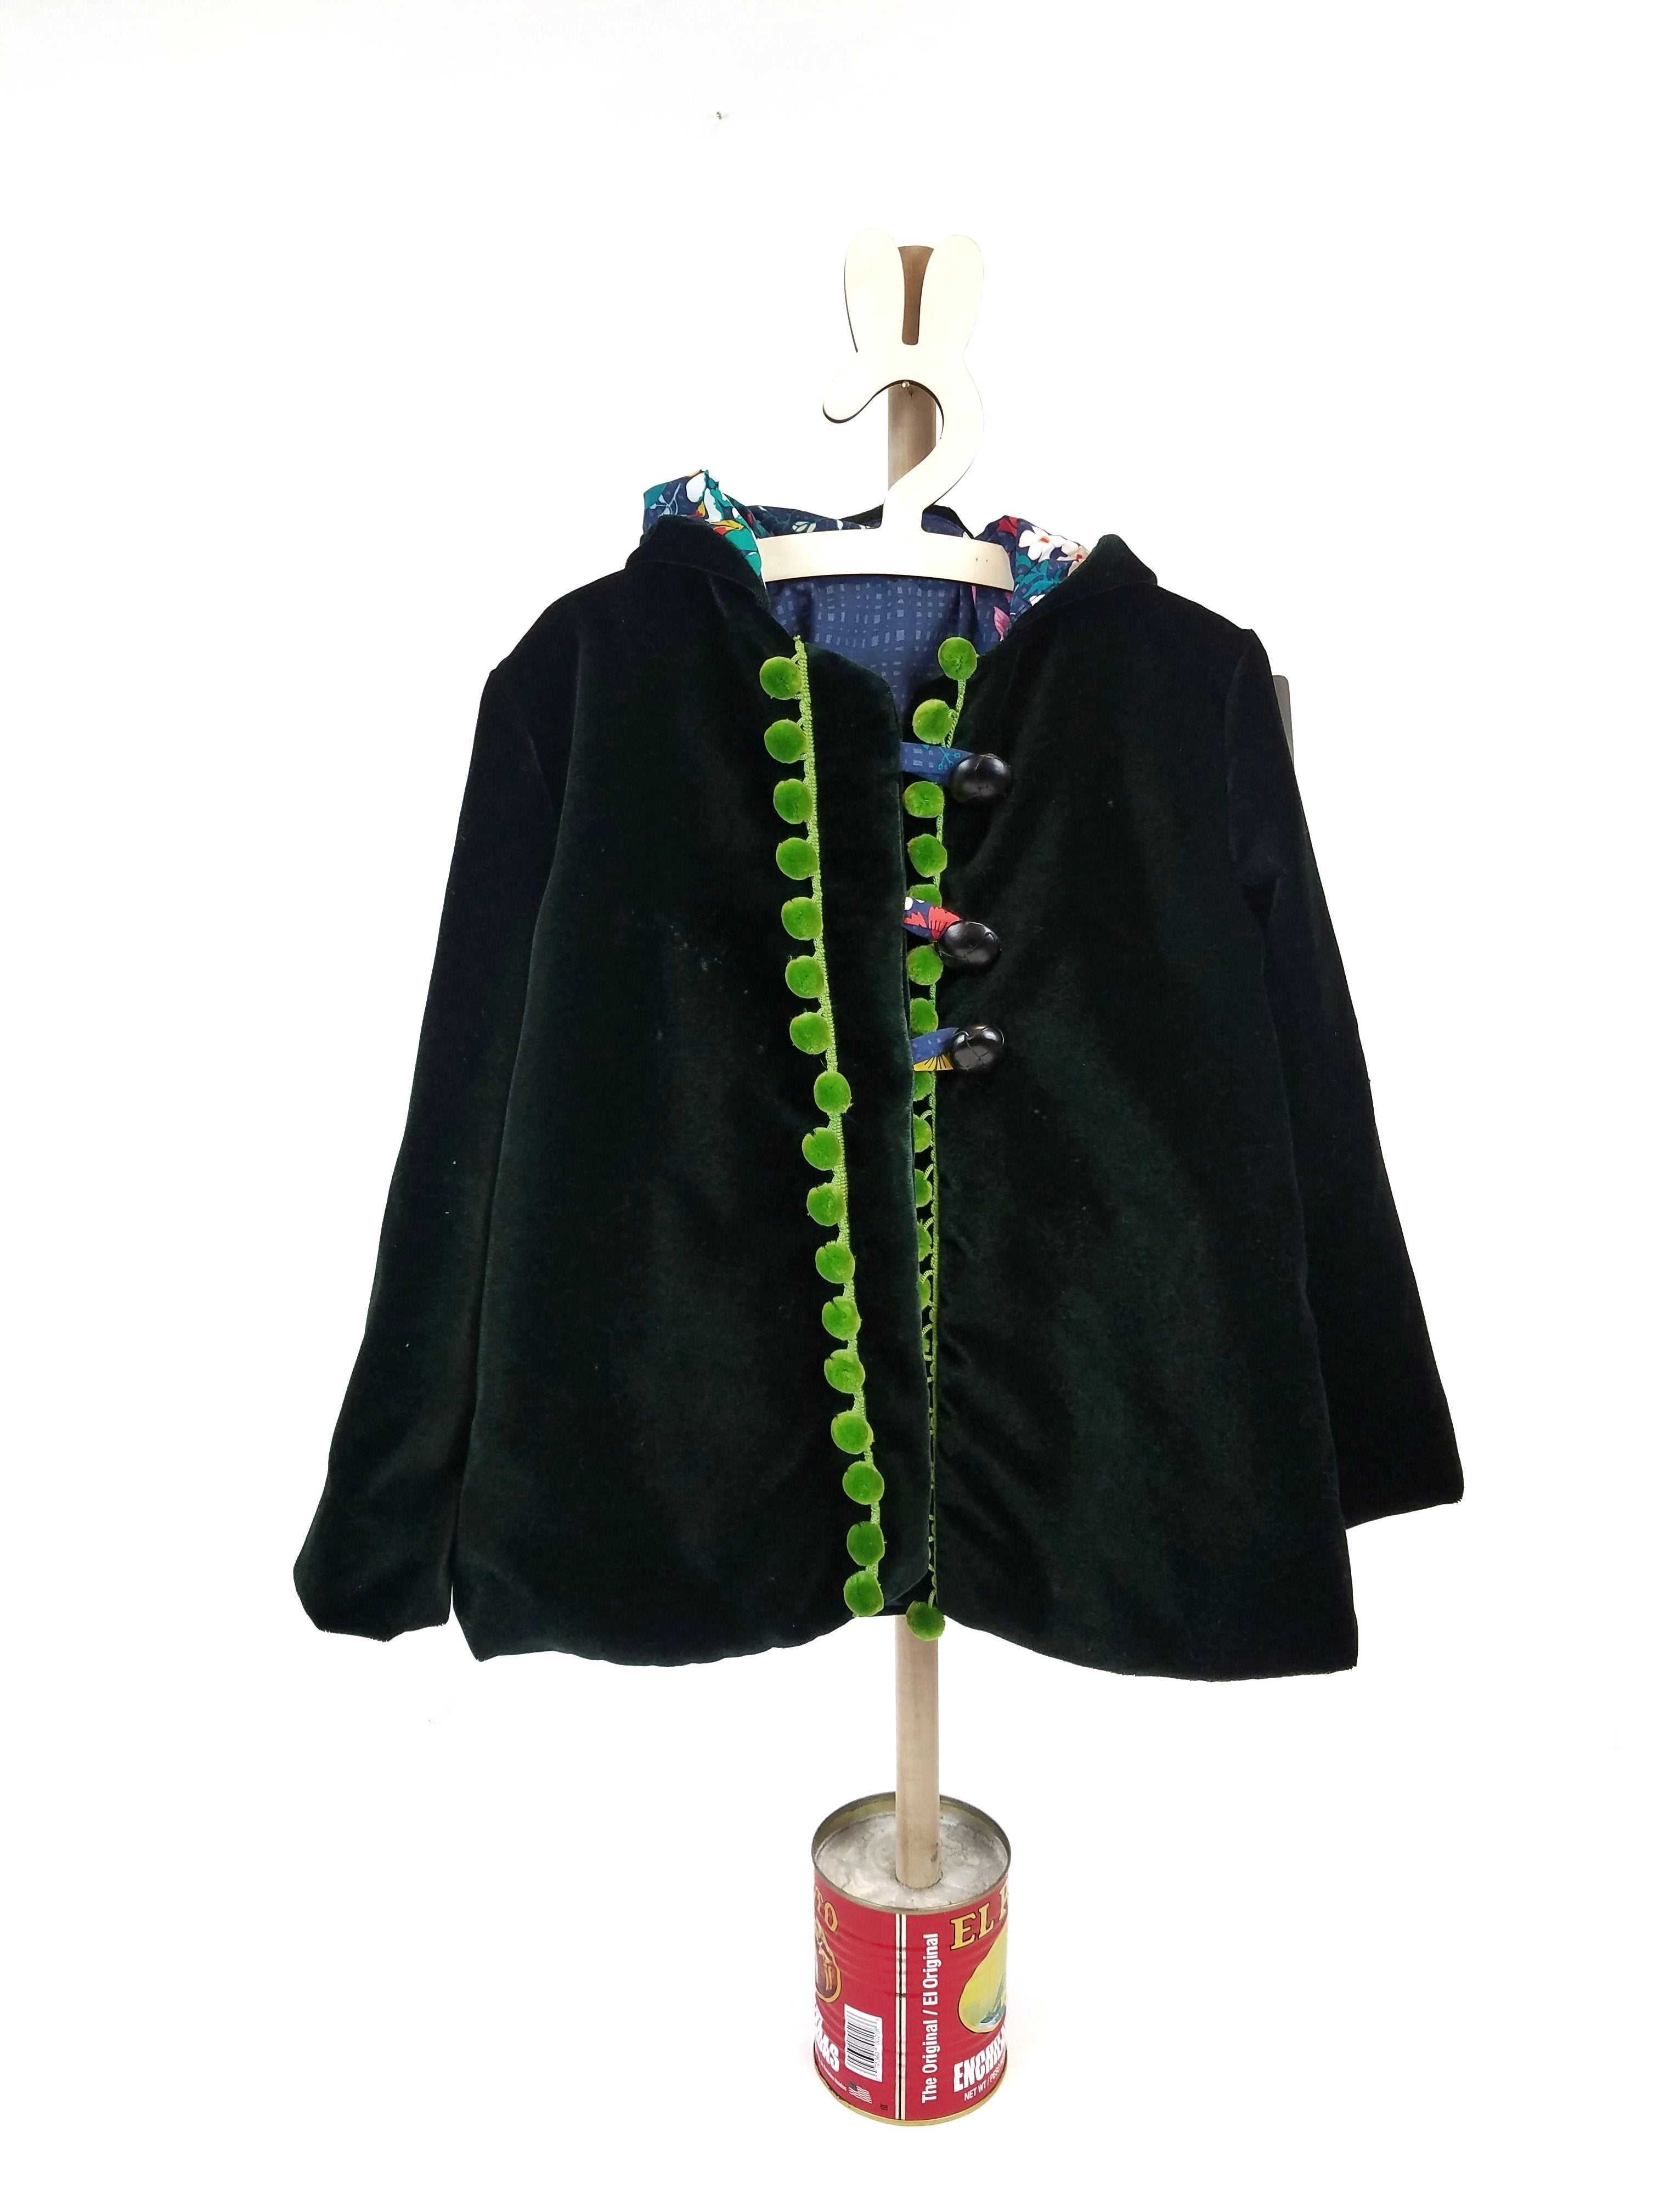 Sz 5 Handmade Green Velvet Coat - Wild Child